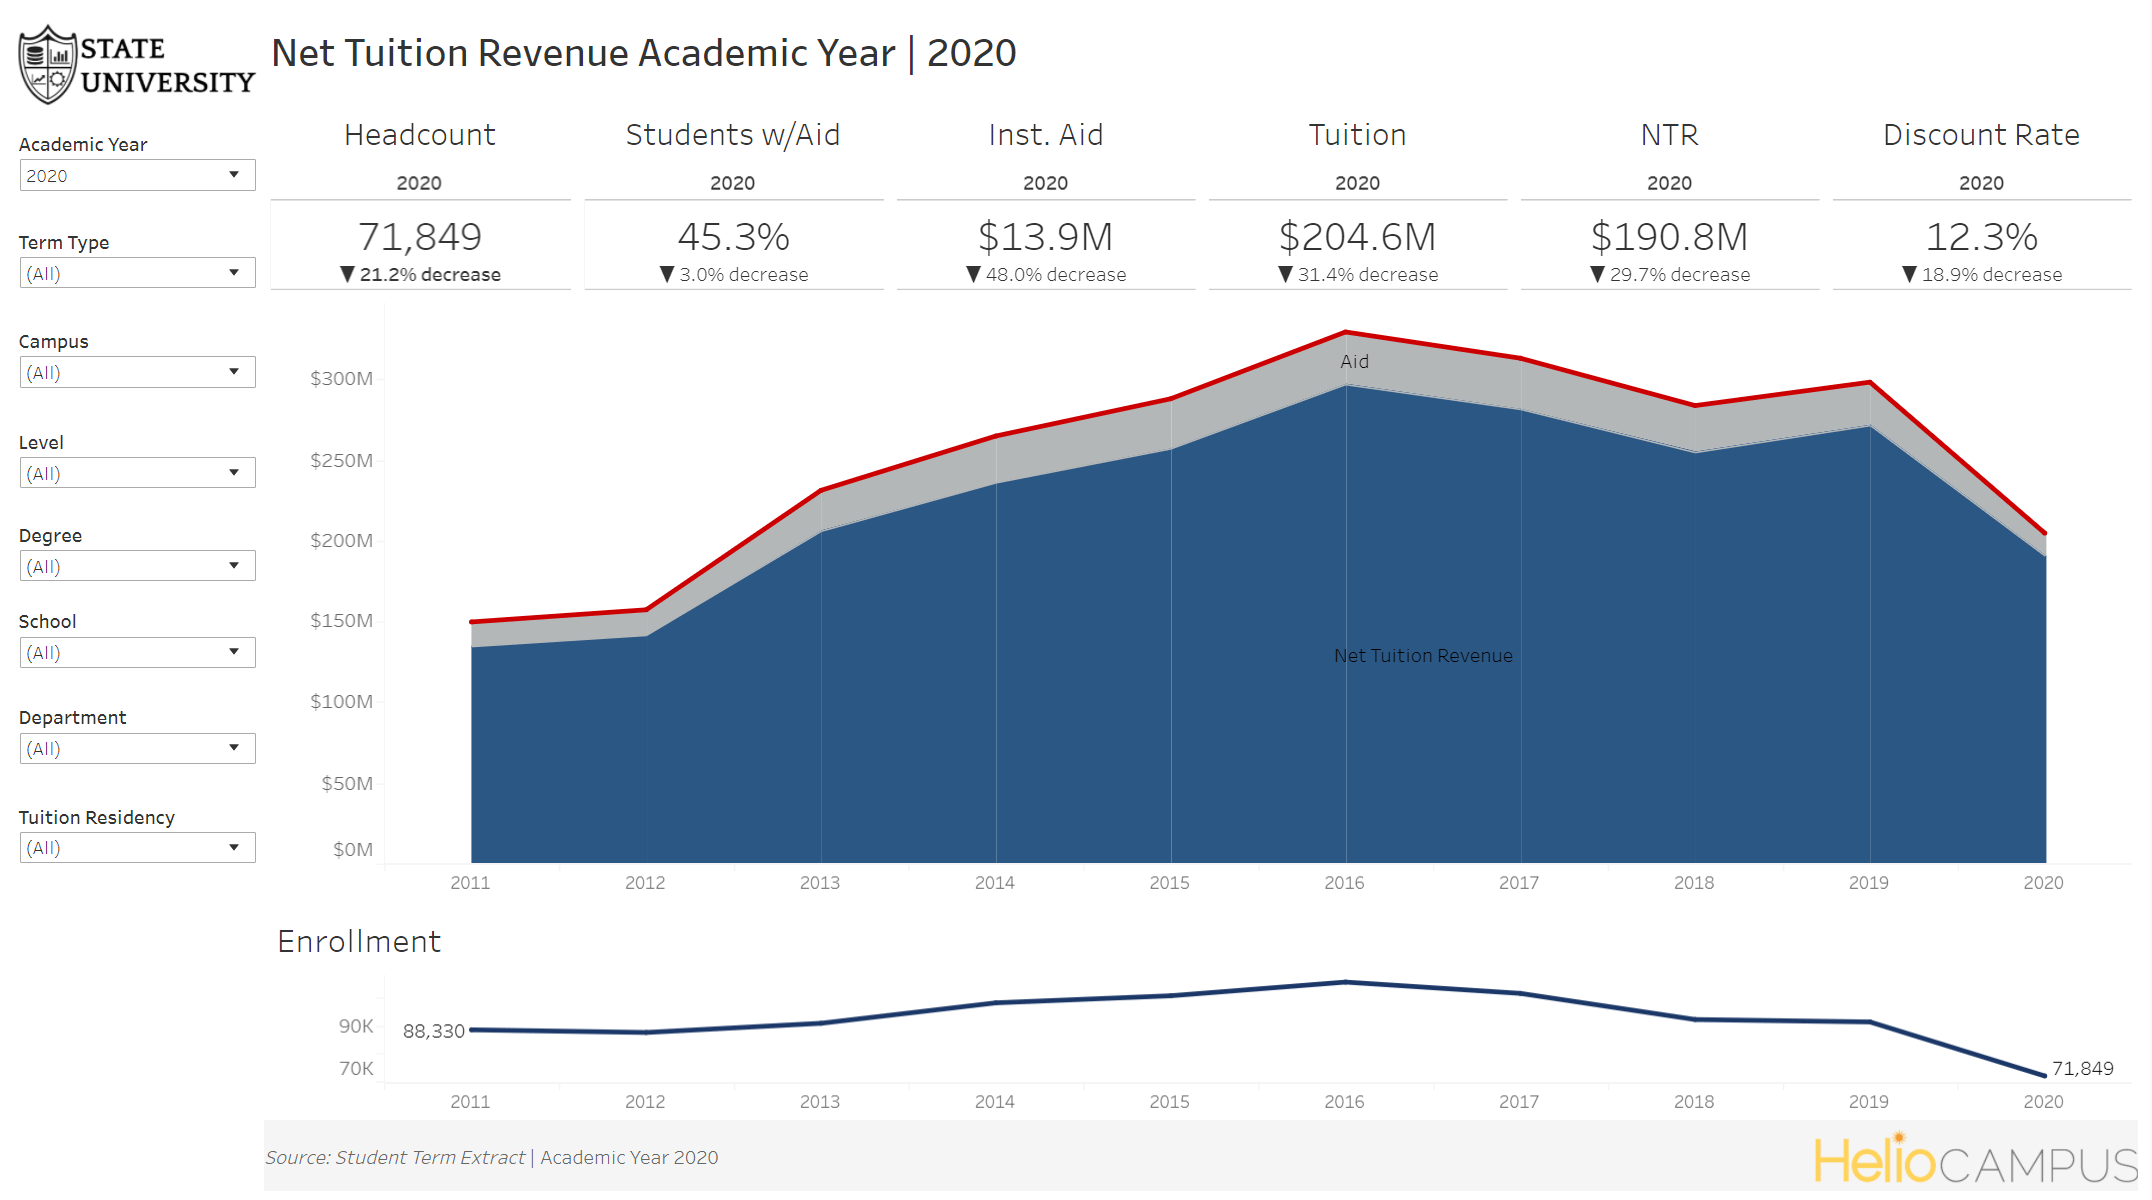 Image of an area graph display net tuition revenues